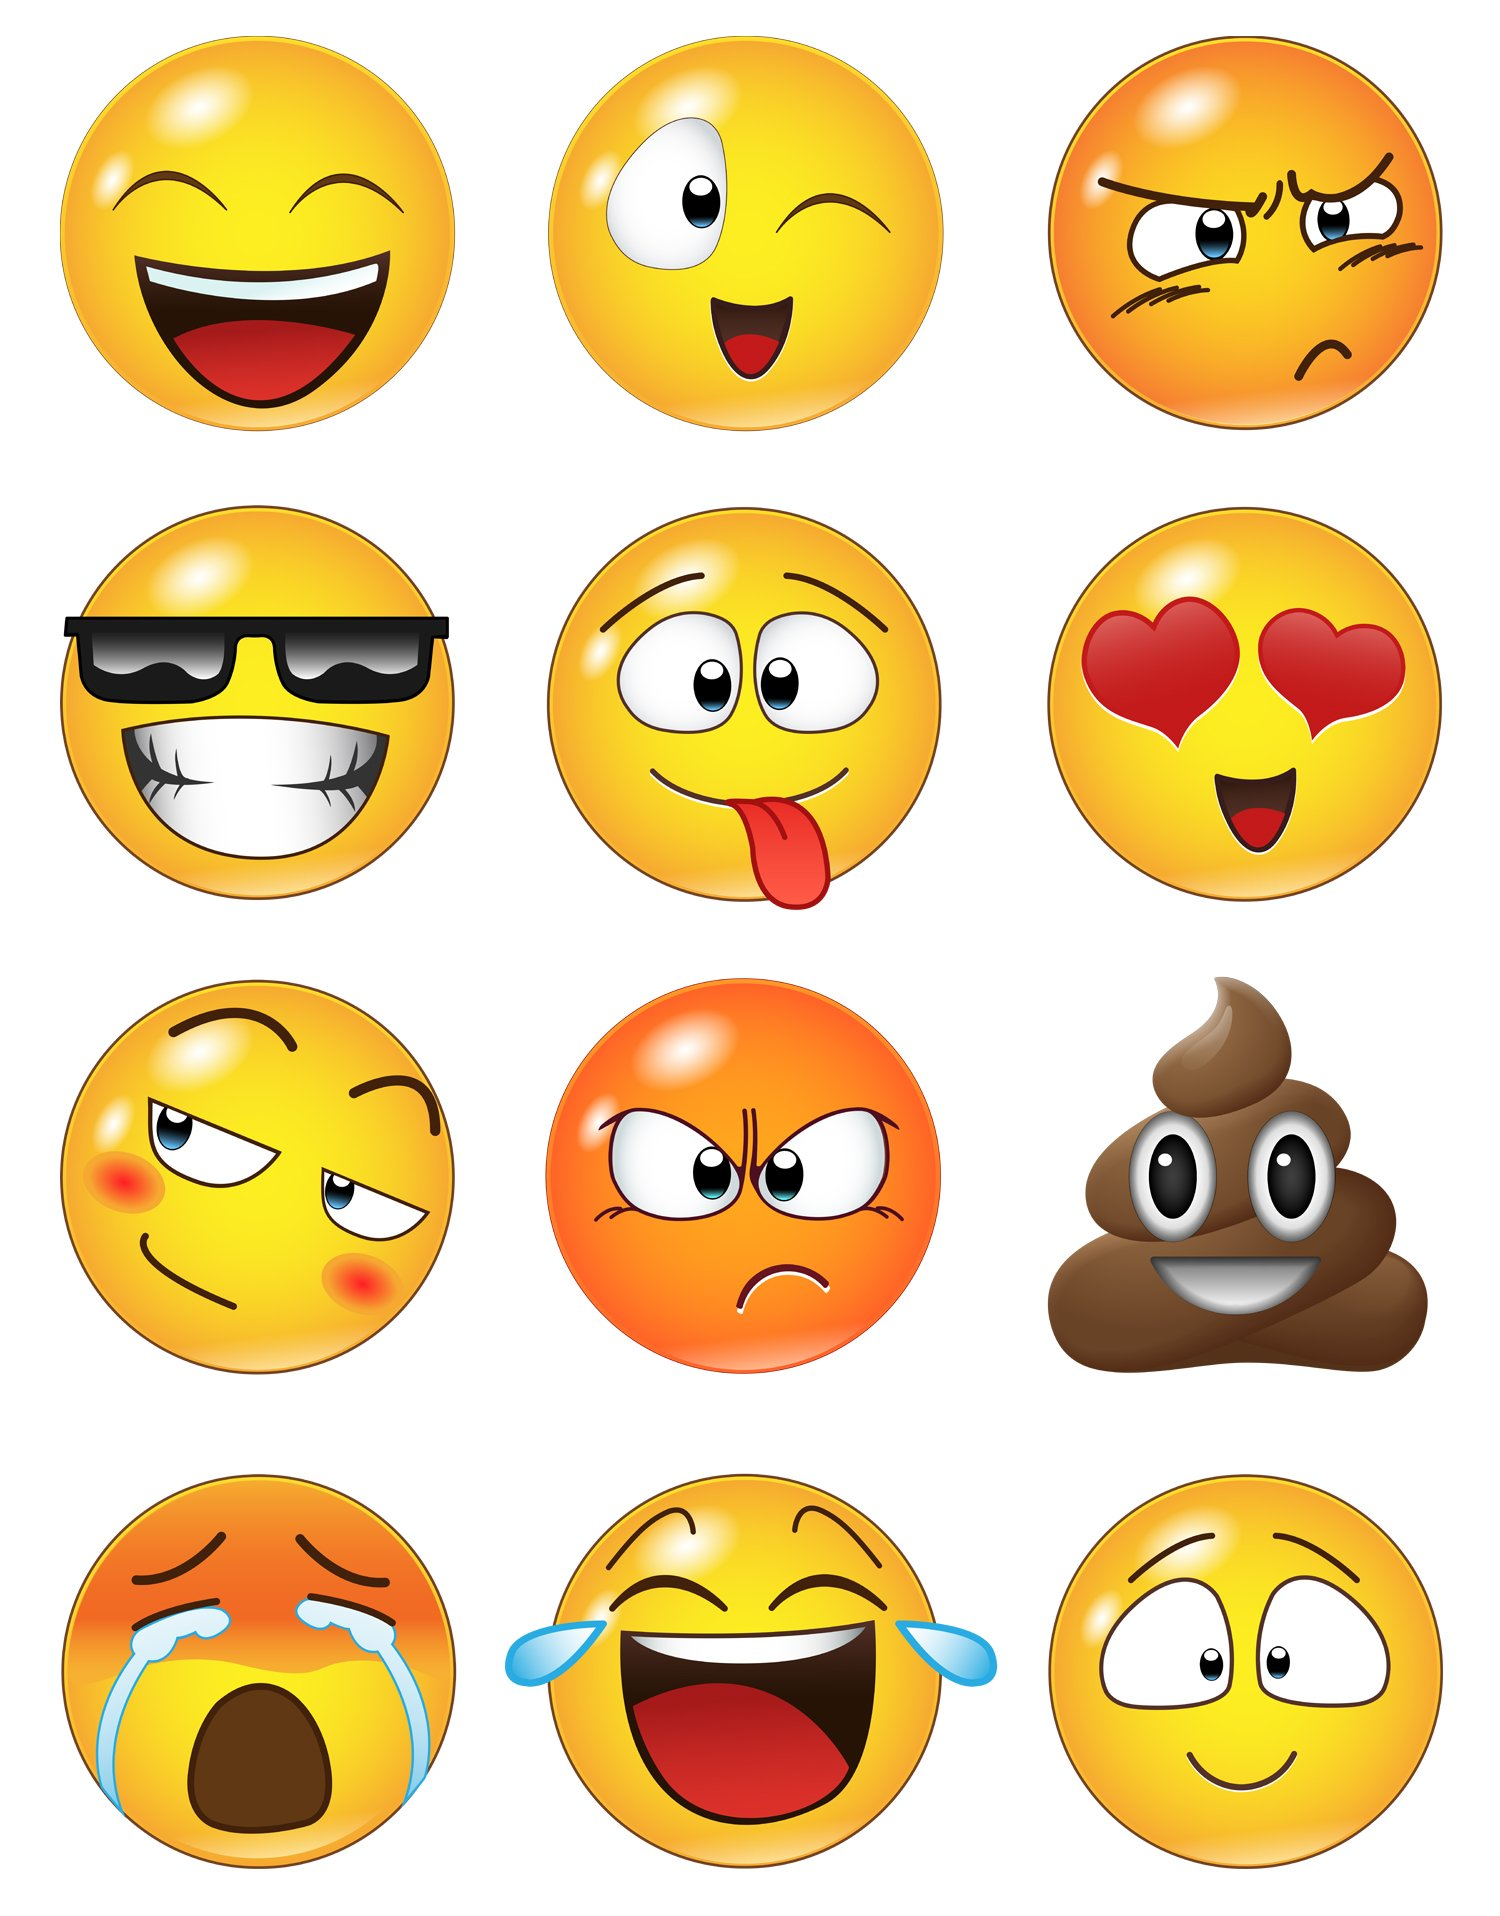 12 Large Emoji Wall Decal Faces Sticker #6052s 10in X 10in Each by Stickerbrand (Image #4)